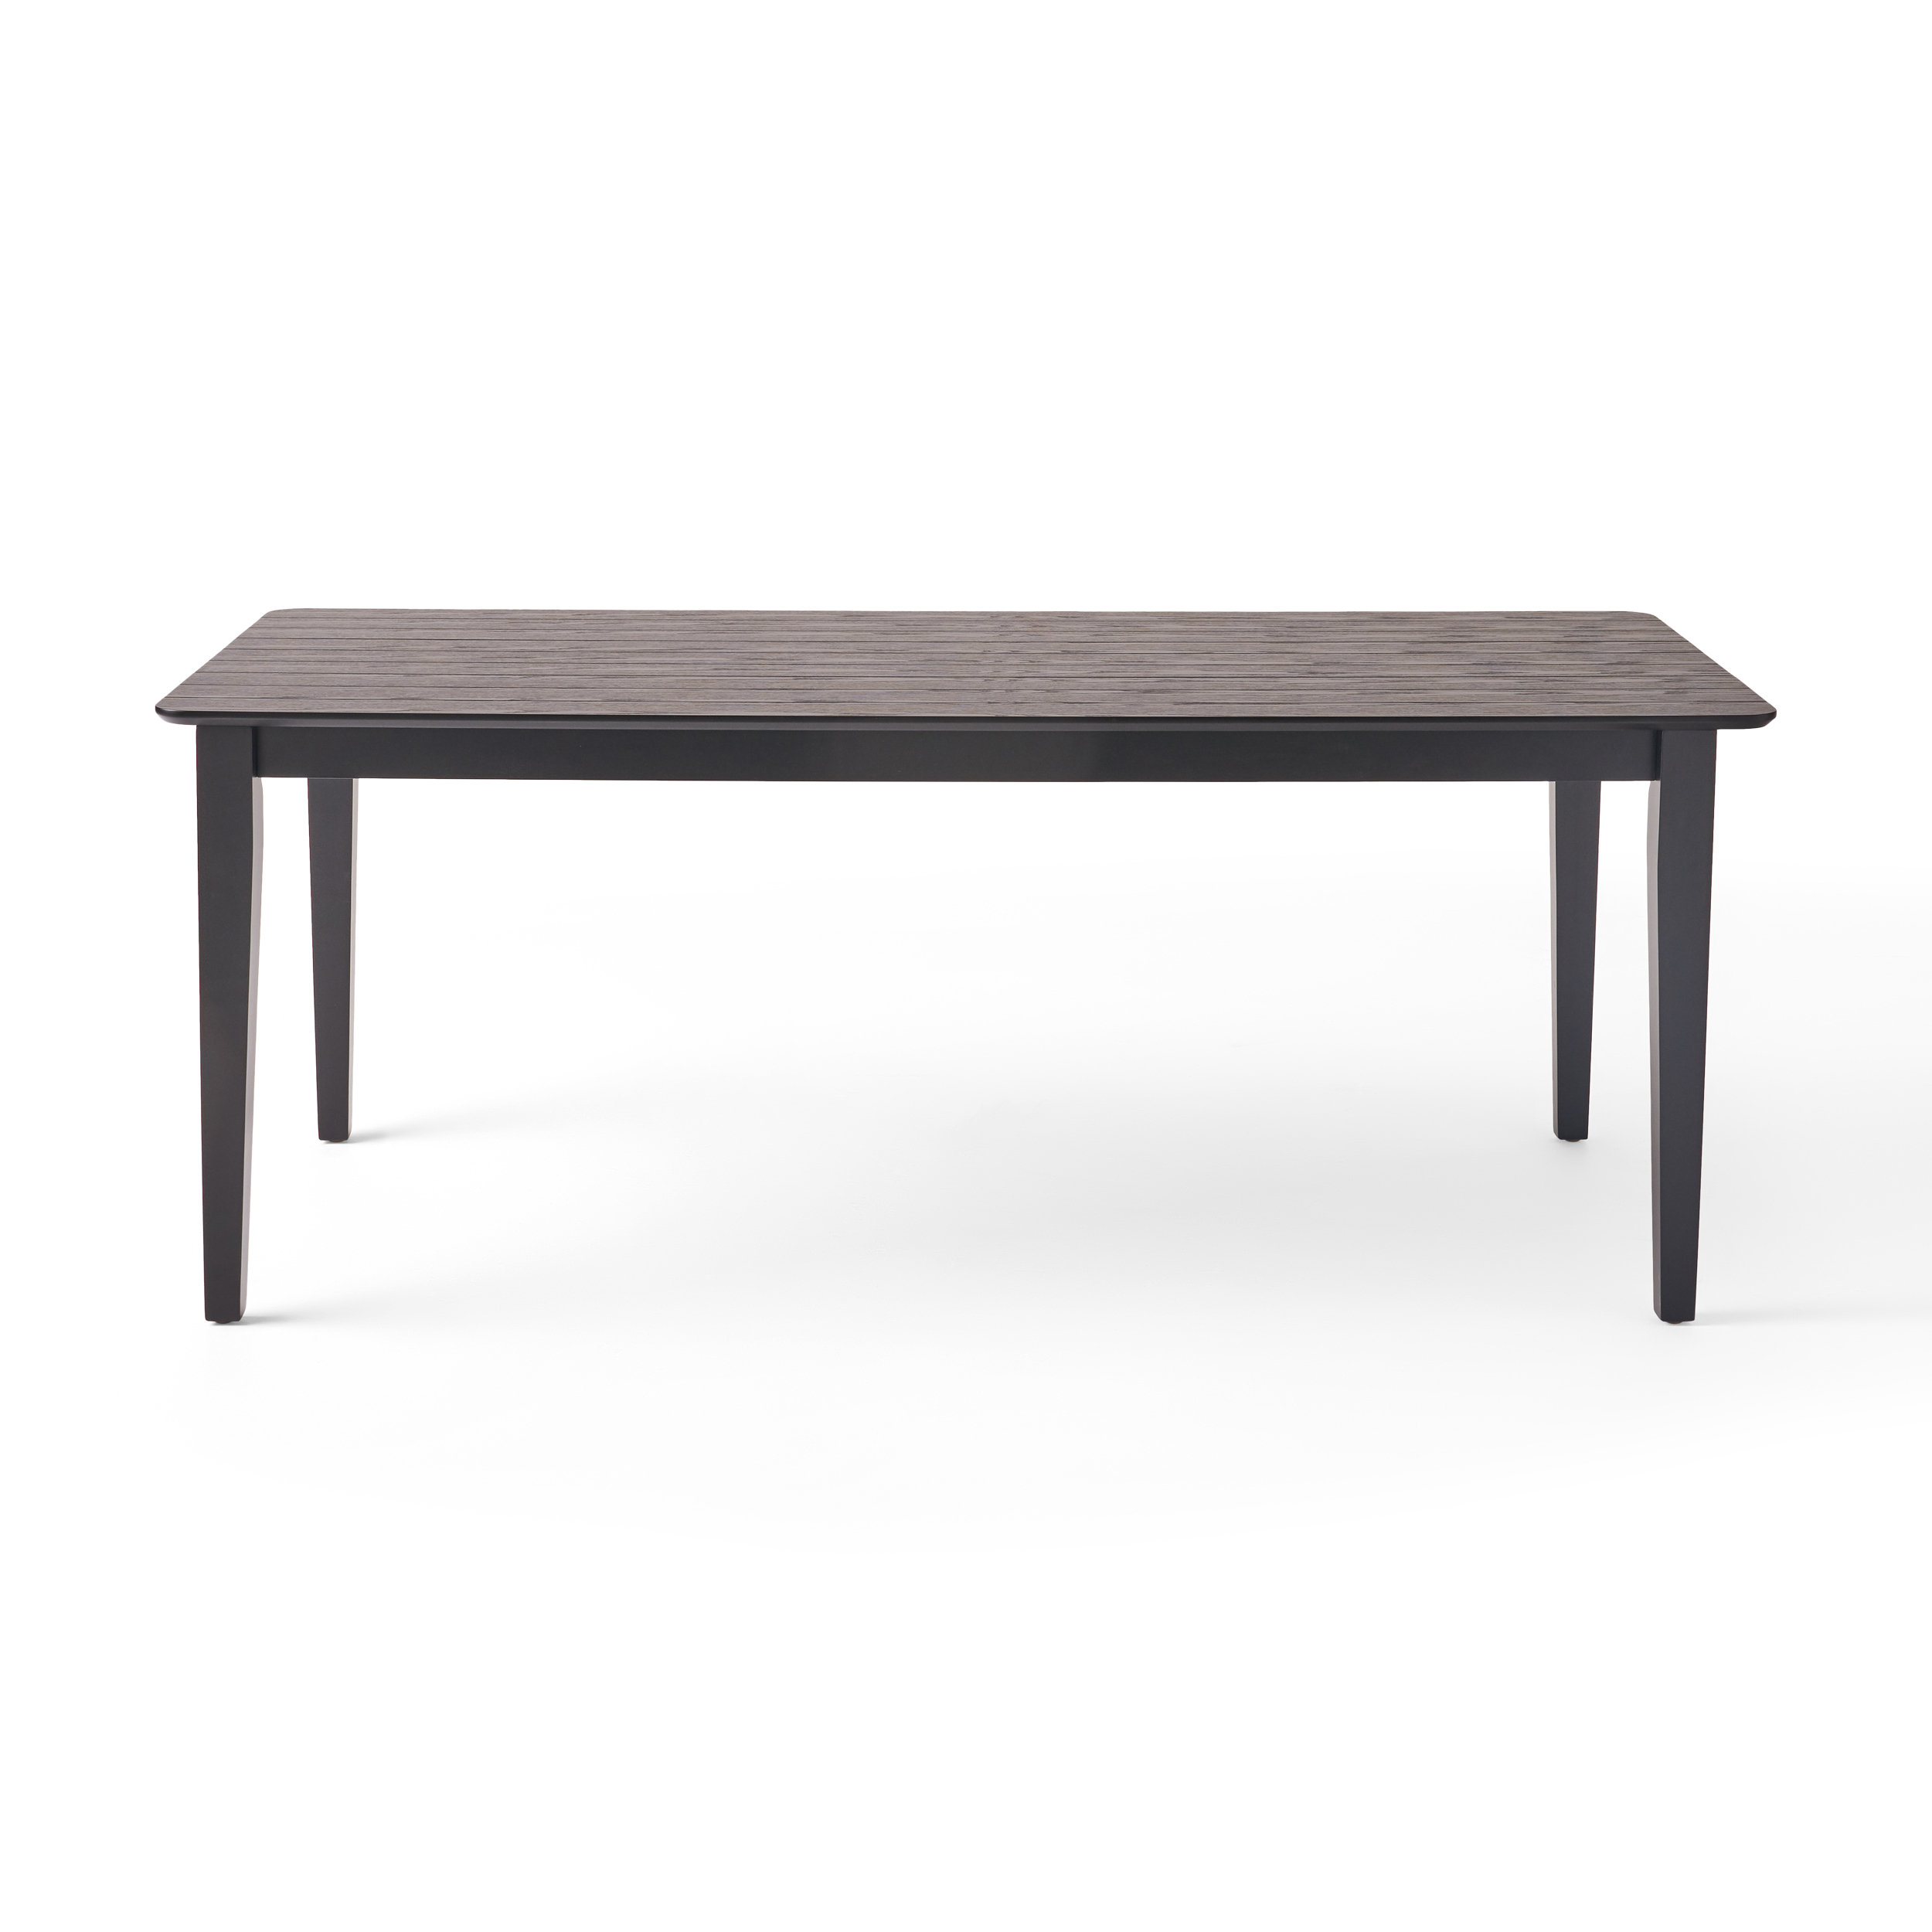 Odelia Rectangular 8 Seat Farmhouse Dining Table, Black Throughout Newest Nalan 38'' Dining Tables (View 10 of 15)